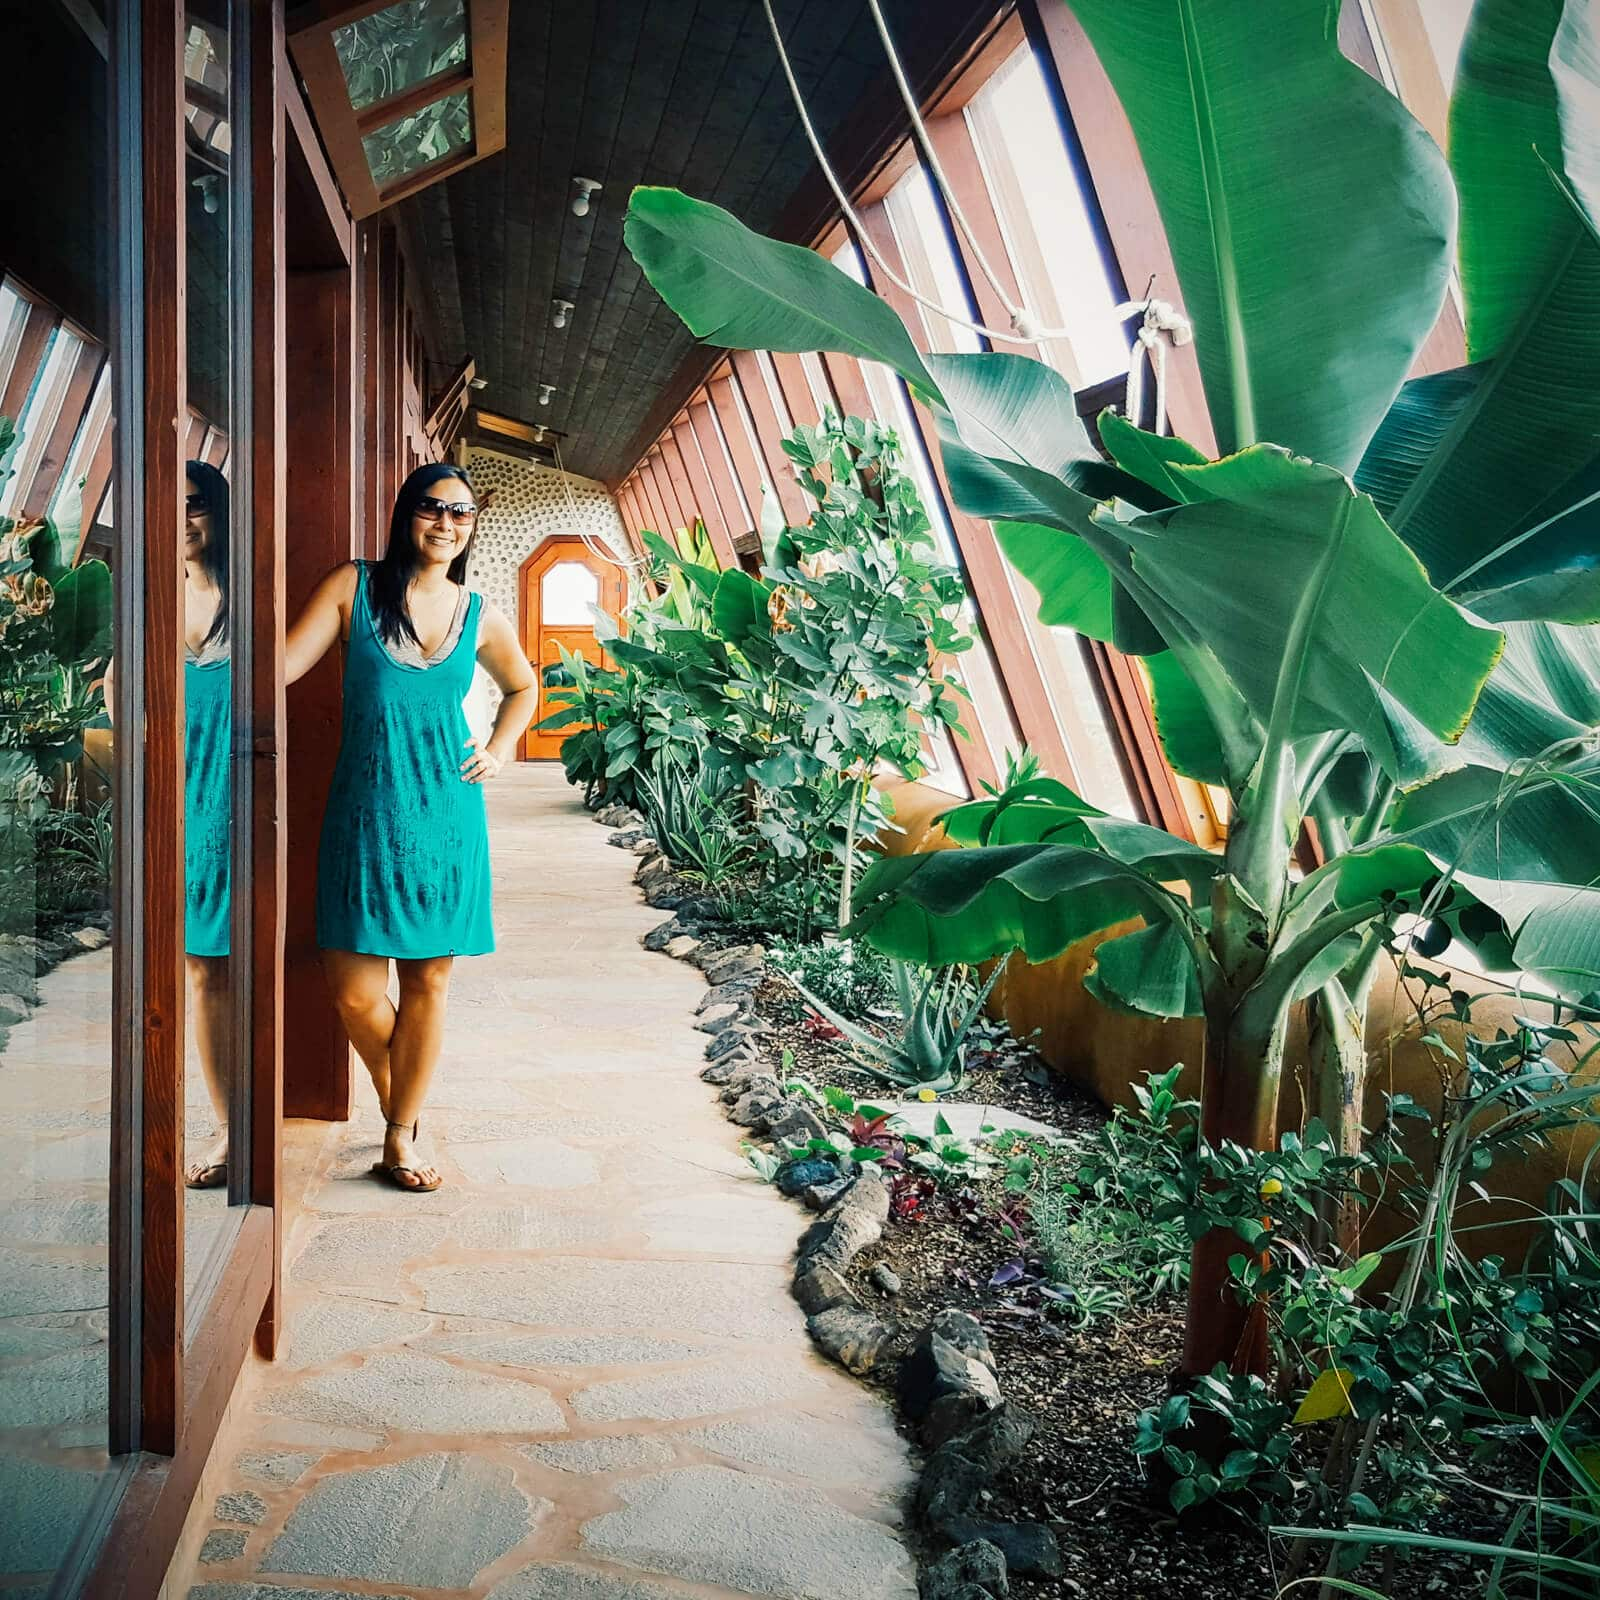 I stayed in an Earthship: eco living in the high desert